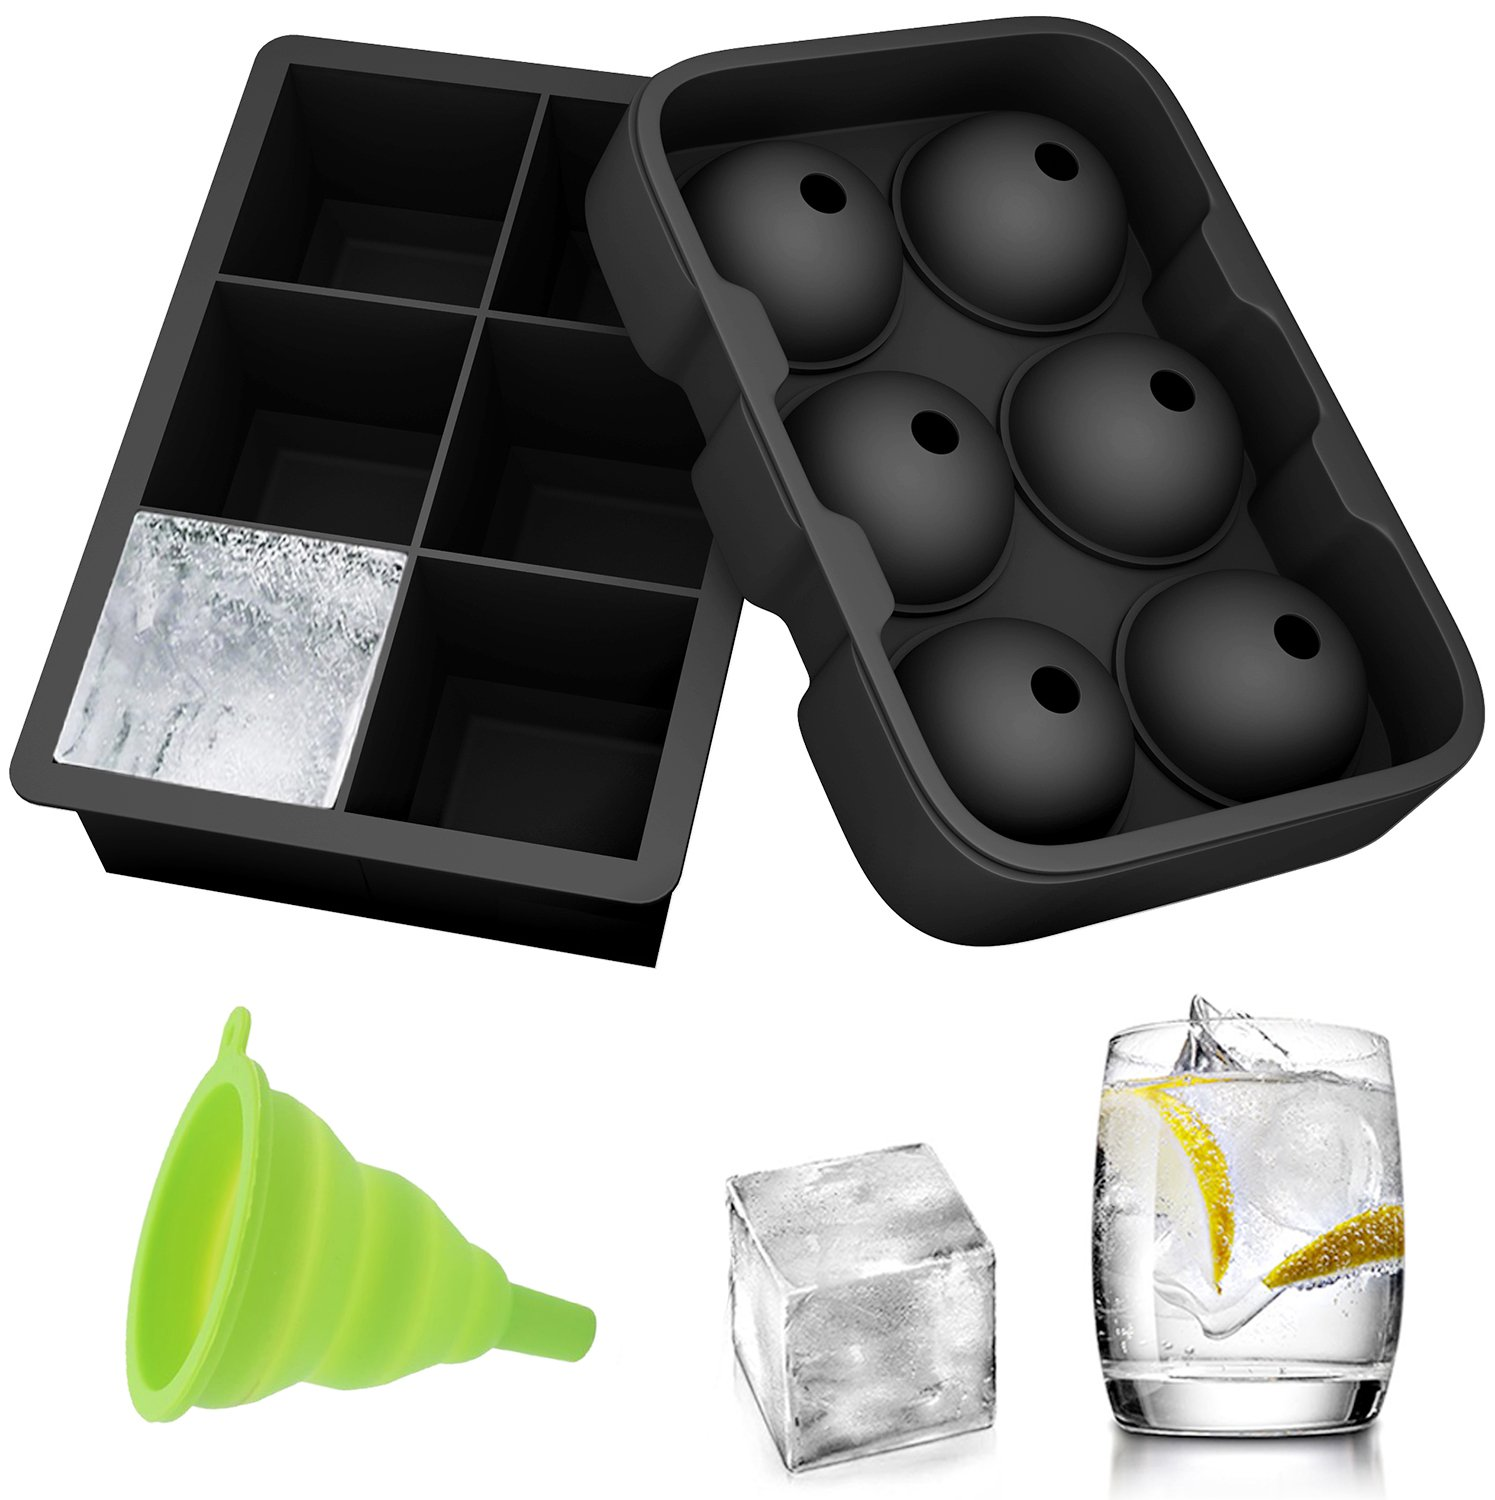 Ozera 2 Pack Silicone Ice Cube Molds, Ice Cube Trays Set - Sphere Round Ice Ball Maker & Large Square Ice Molds with 1 Plastic Funnel